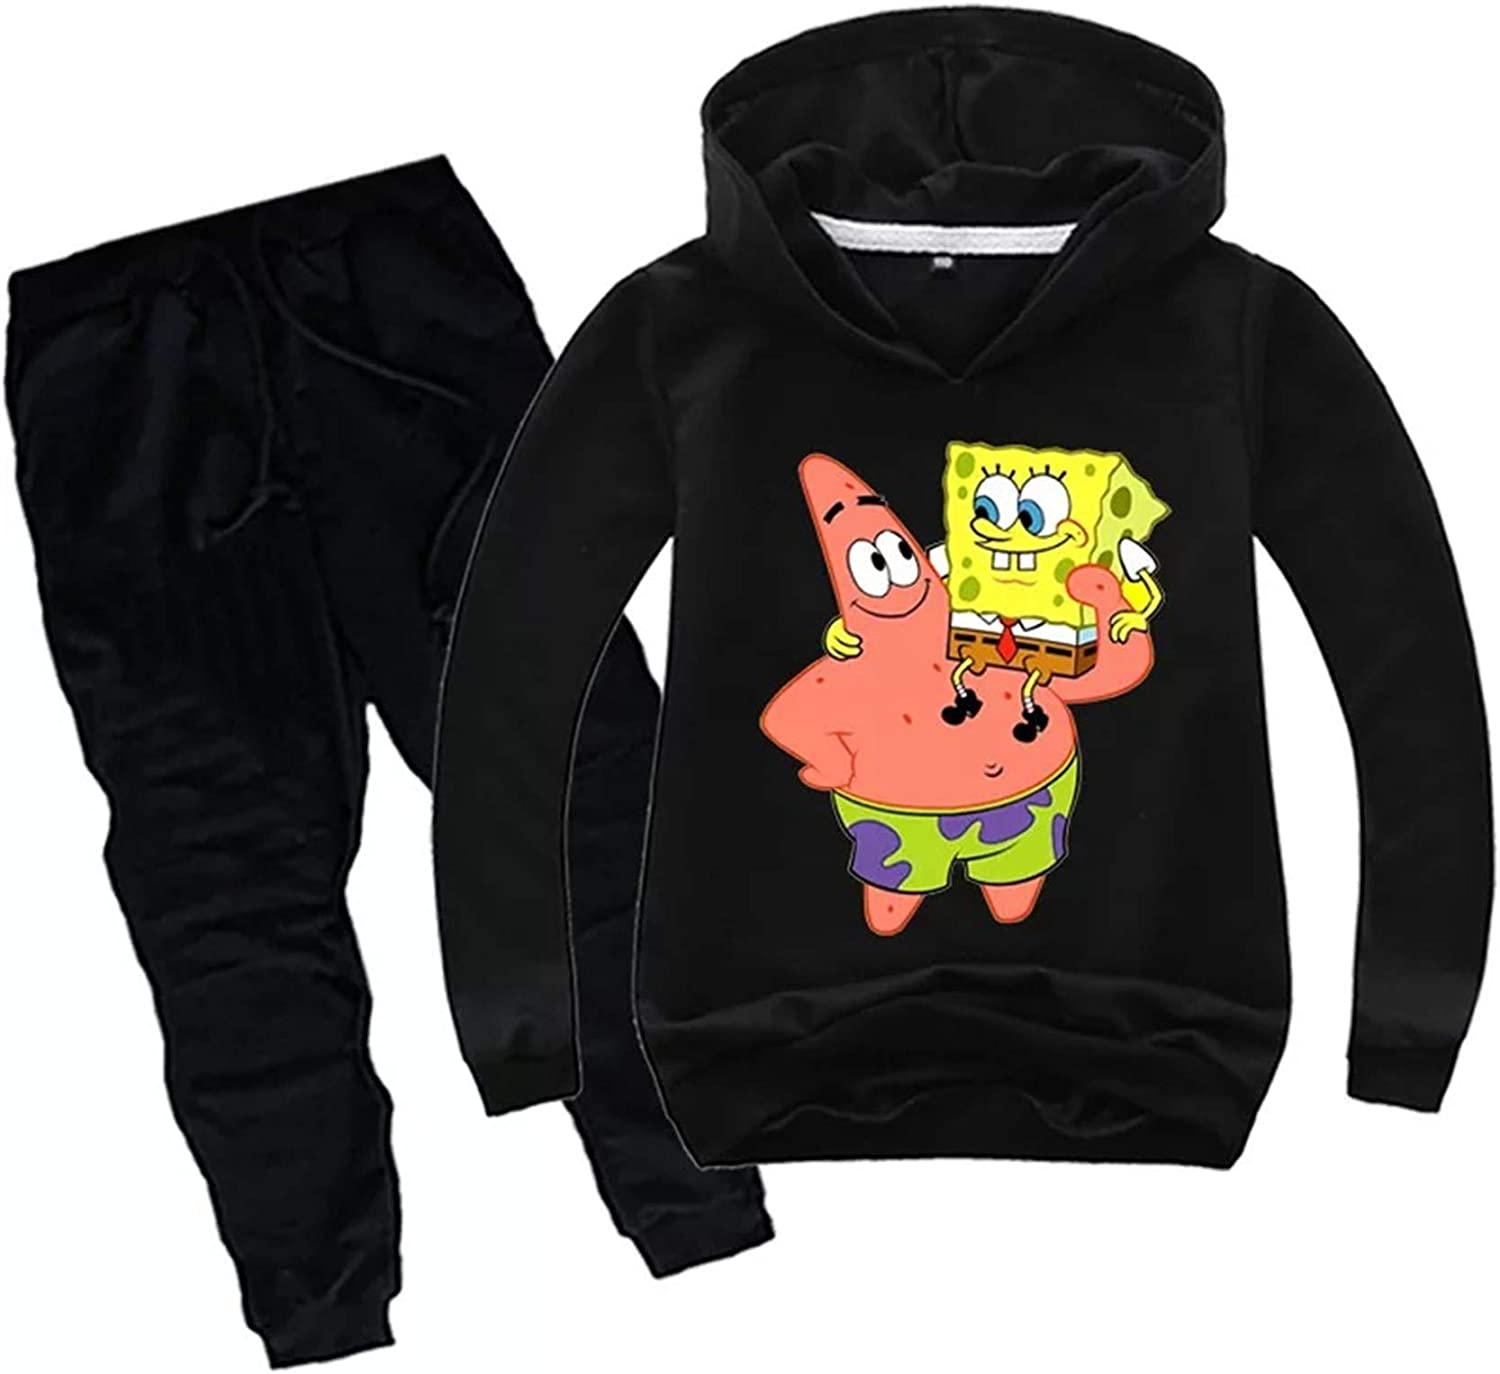 Gin-back Kids Toddlers Spongebob Pullover Hooded Sweatshirts-Fleece Long Sleeve Casual Hoodies for Youth